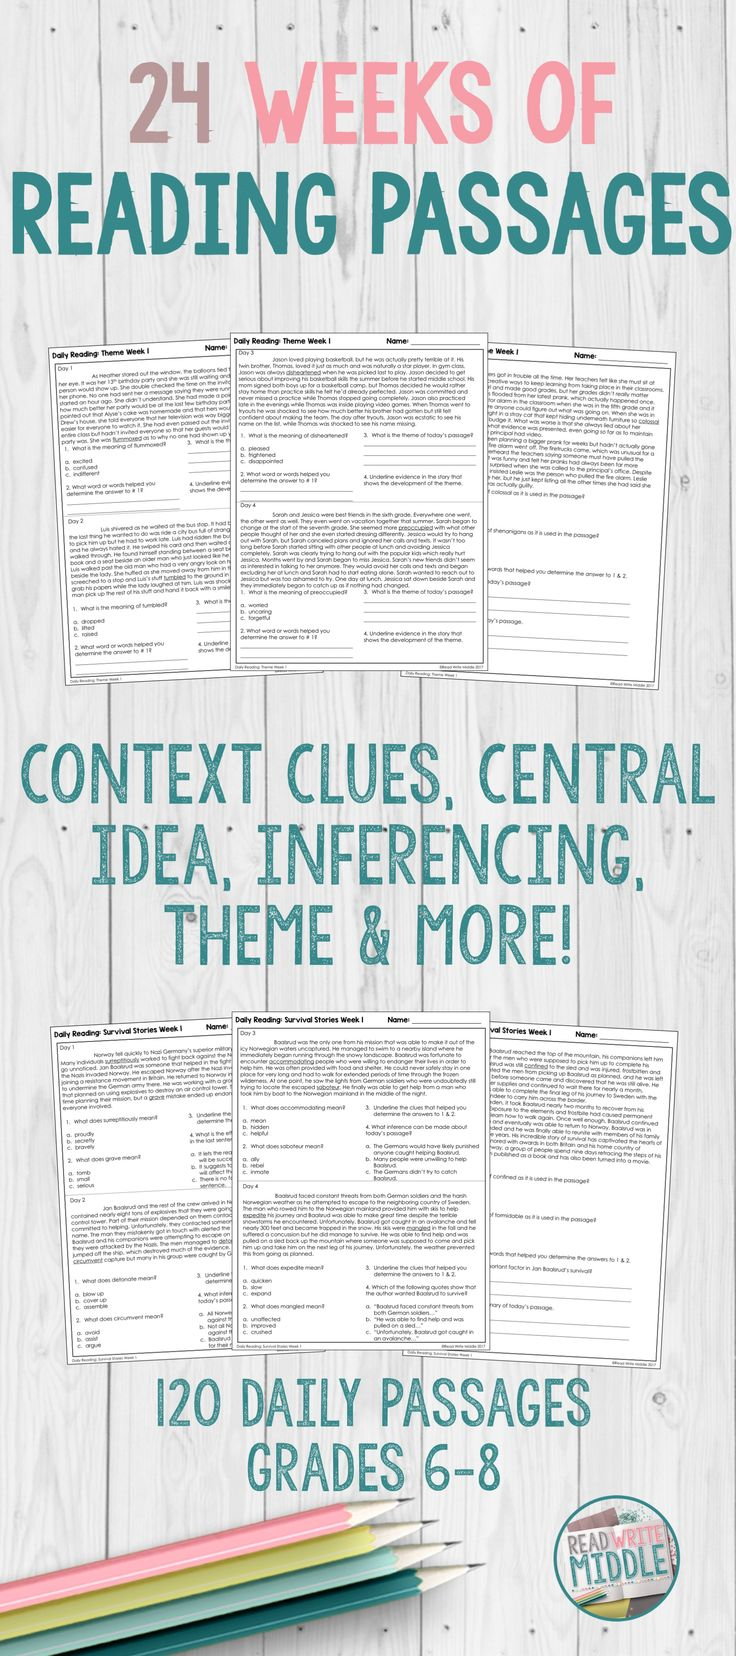 Middle school reading comprehension passages and questions are great test prep that focuses on context clues central idea, inferences, theme & more! #teacher #reading #middleschool #testing